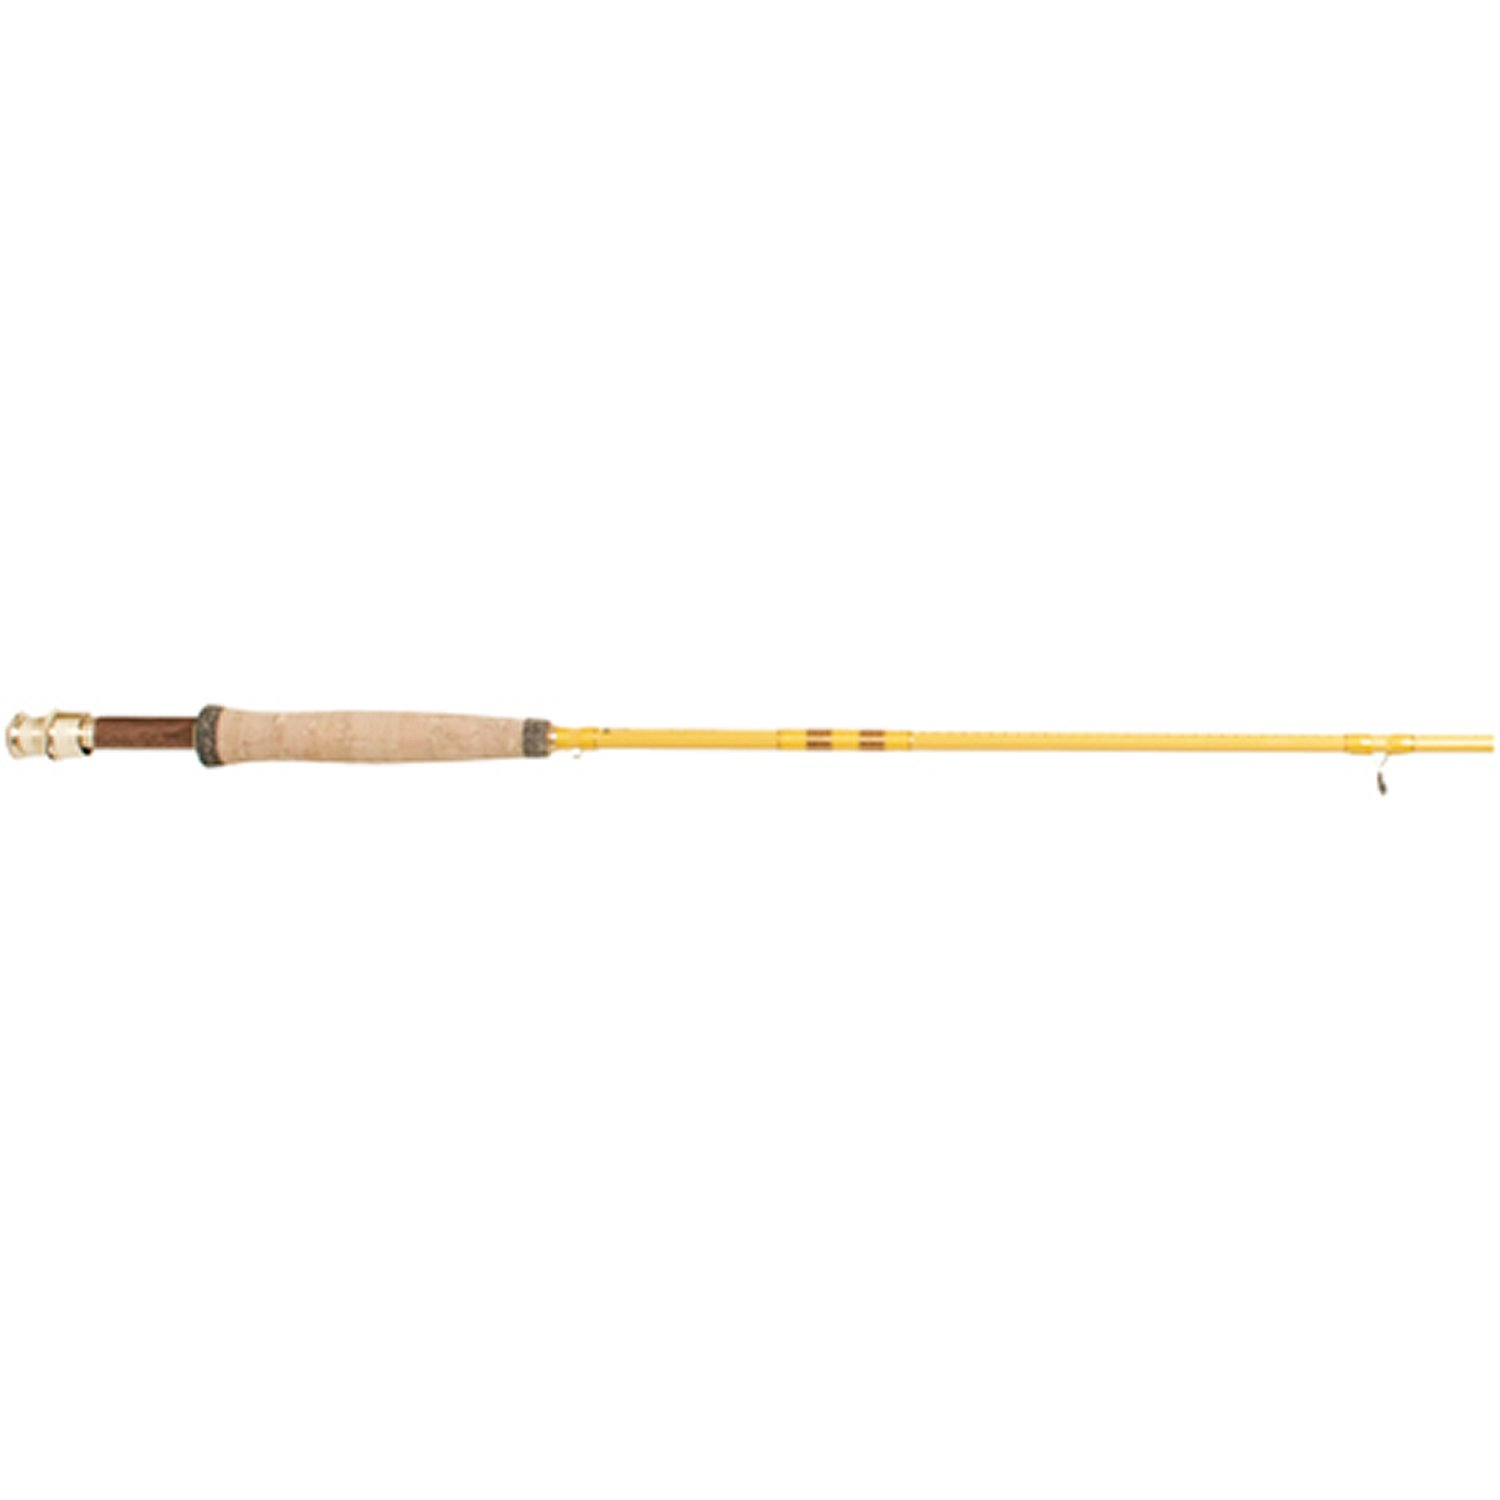 Eagle Claw, Featherlight Fly Rod, Freshwater, 8 Length 2pc, 5-6 lb Line Rate. Medium Power